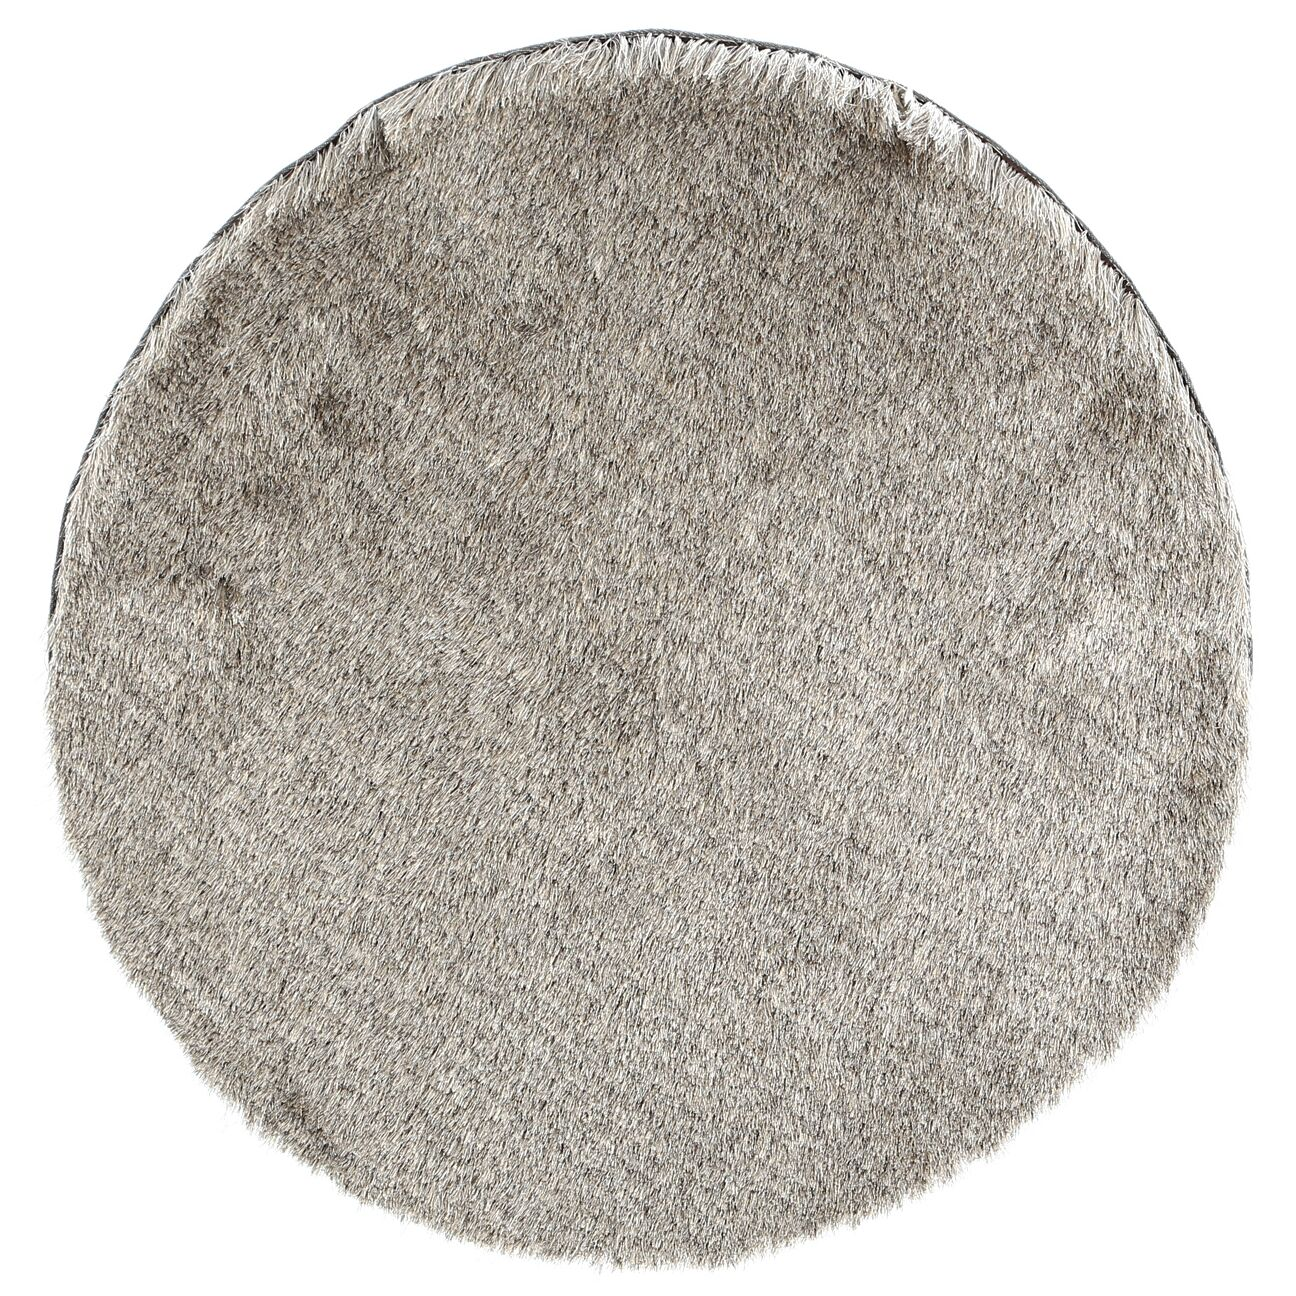 Montpelier Sable/Taupe Area Rug Rug Size: Round 7'